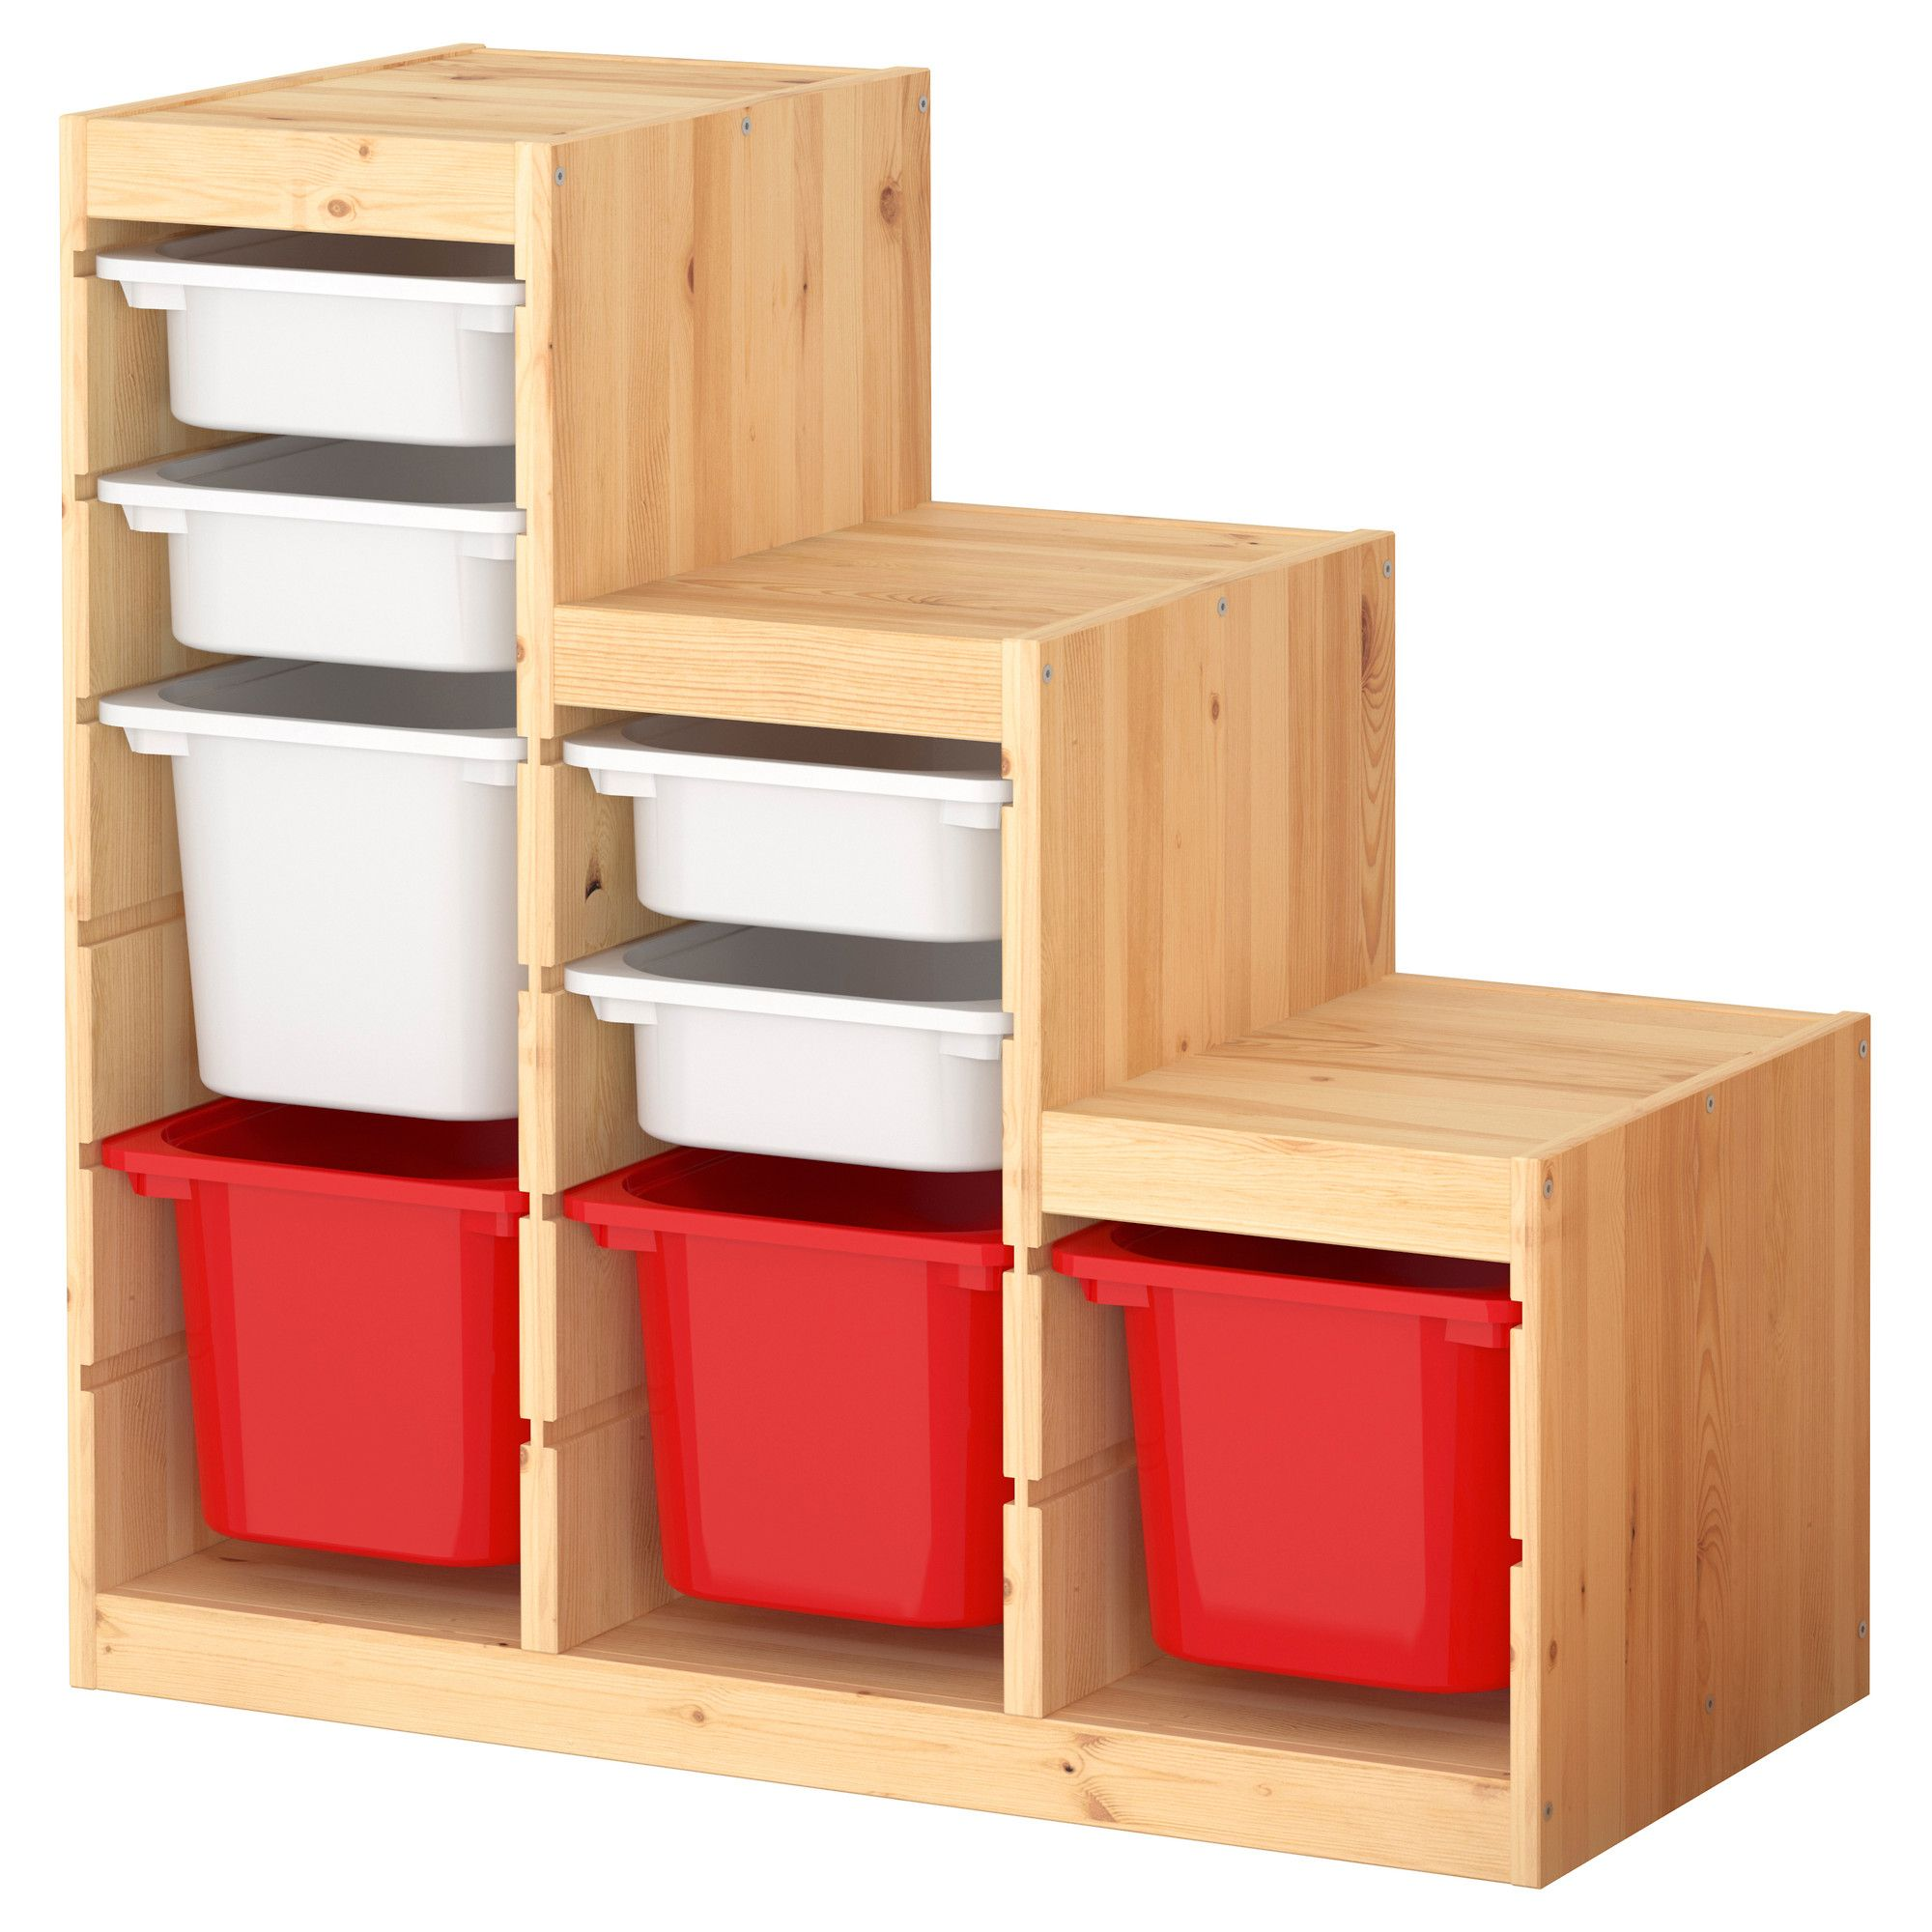 TROFAST Storage combination - IKEA $117.99 Article Number: 298.844.39